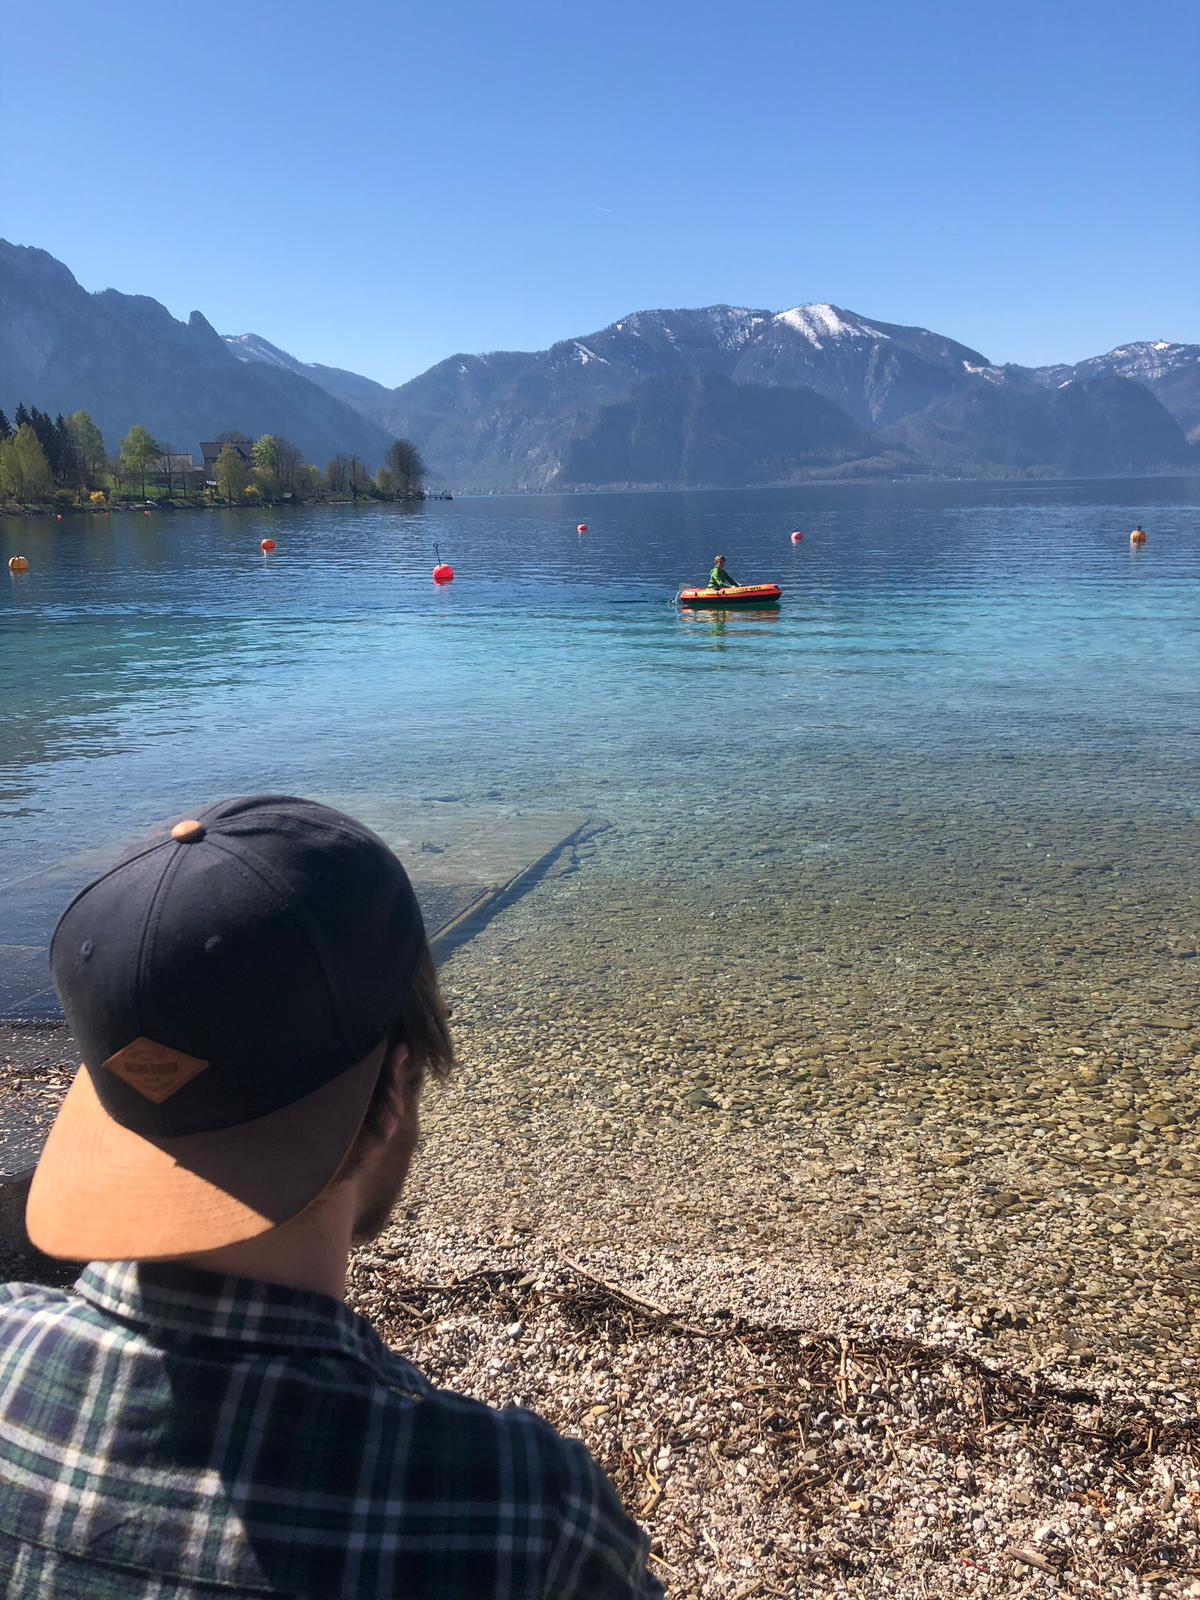 A weekend trip to Attersee